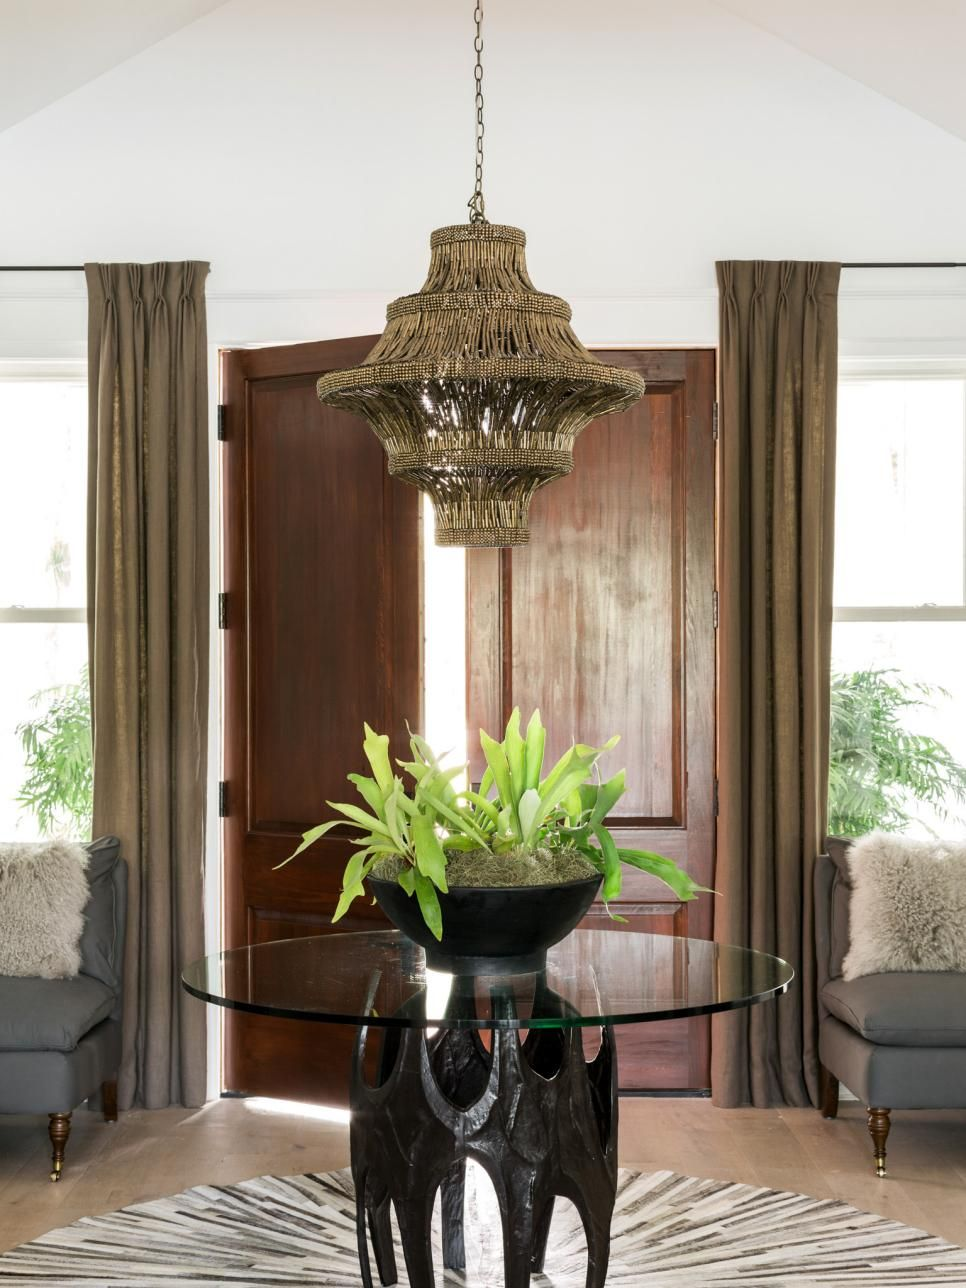 A tasteful foyer creates a grand entry that greets guests as they enter the house and transition to the main living areas of this home that takes Southern style and makes it fresh, young and new.